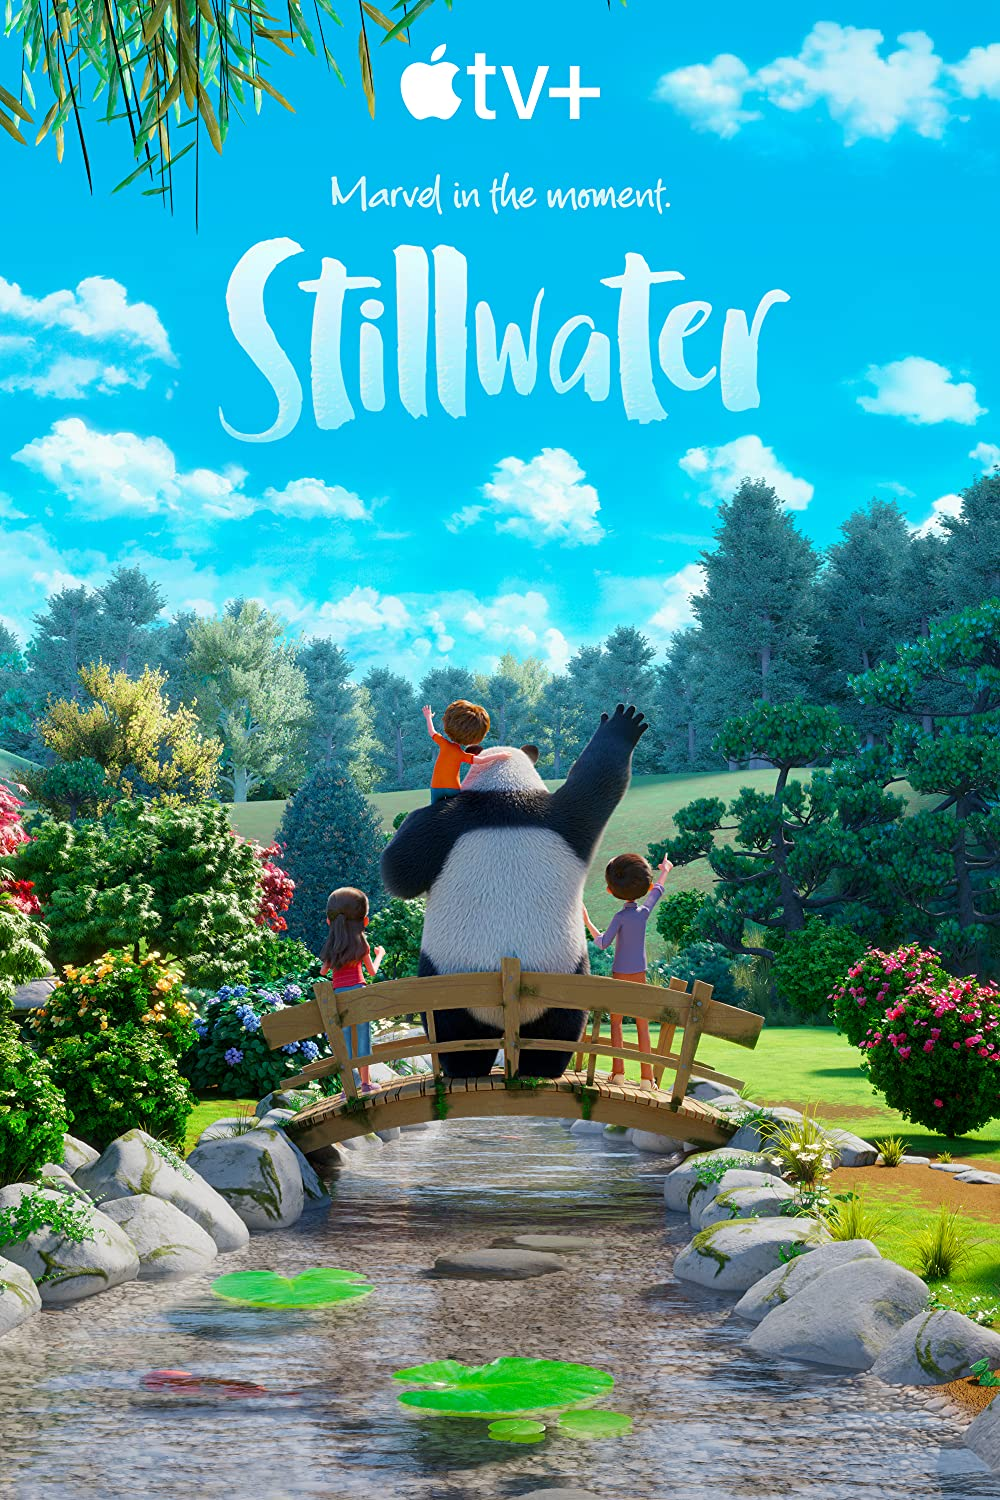 Stillwater 2020 S01 Hindi Dubbed Complete ATVP Series 450MB HDRip Download